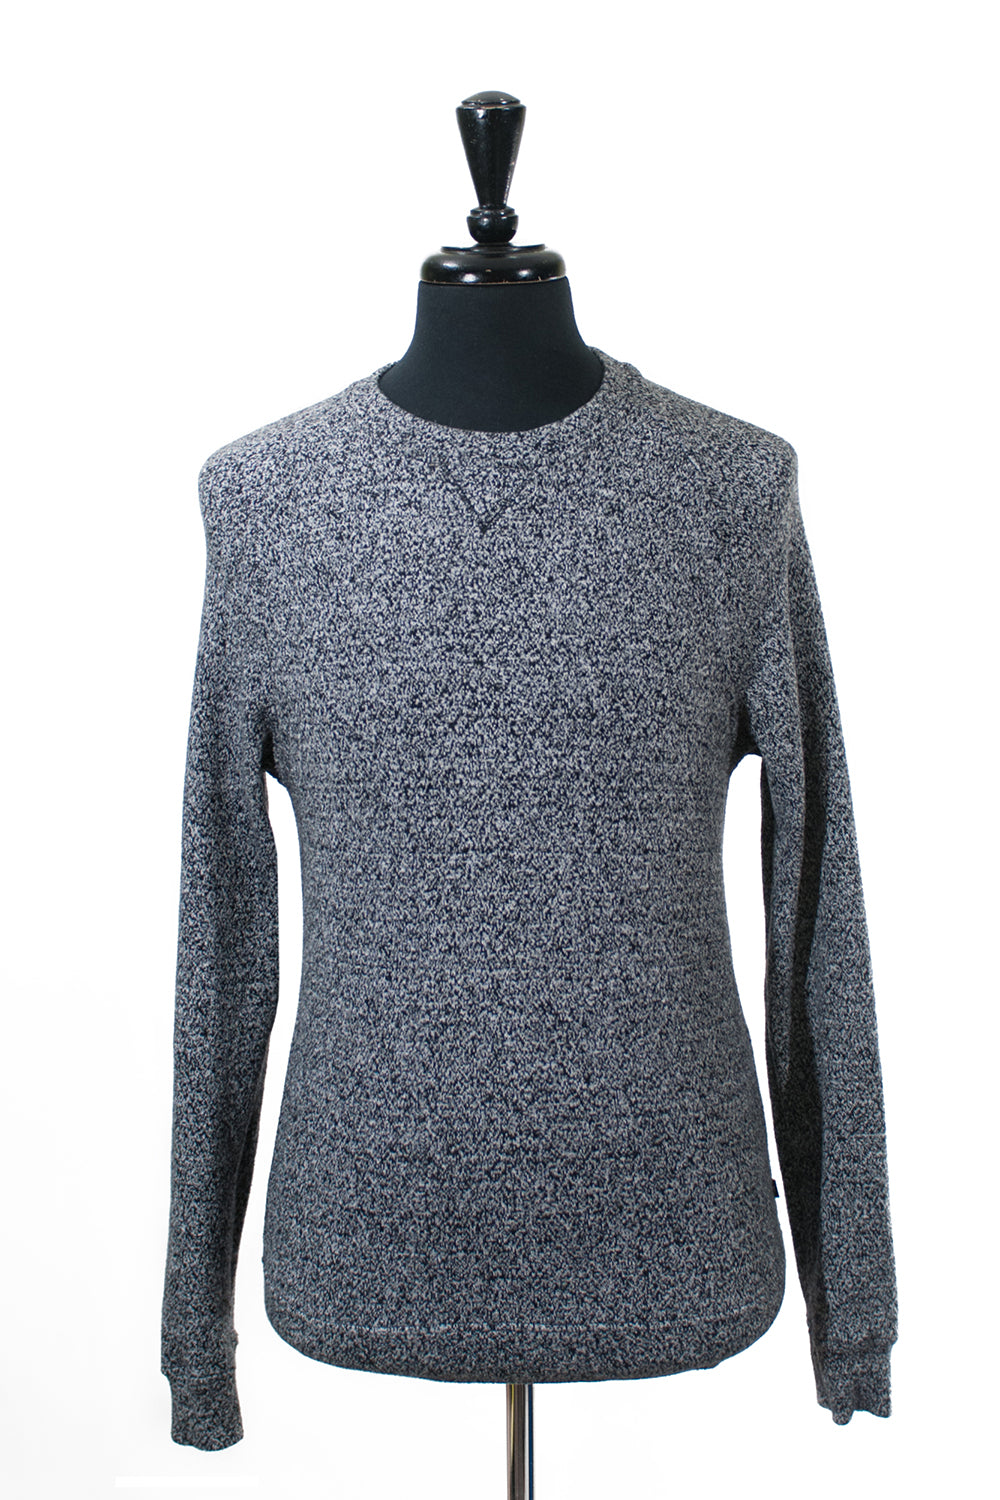 J.Lindeberg Marled Grey Cotton Blend Sweater. Luxmrkt.com menswear consignment Edmonton.